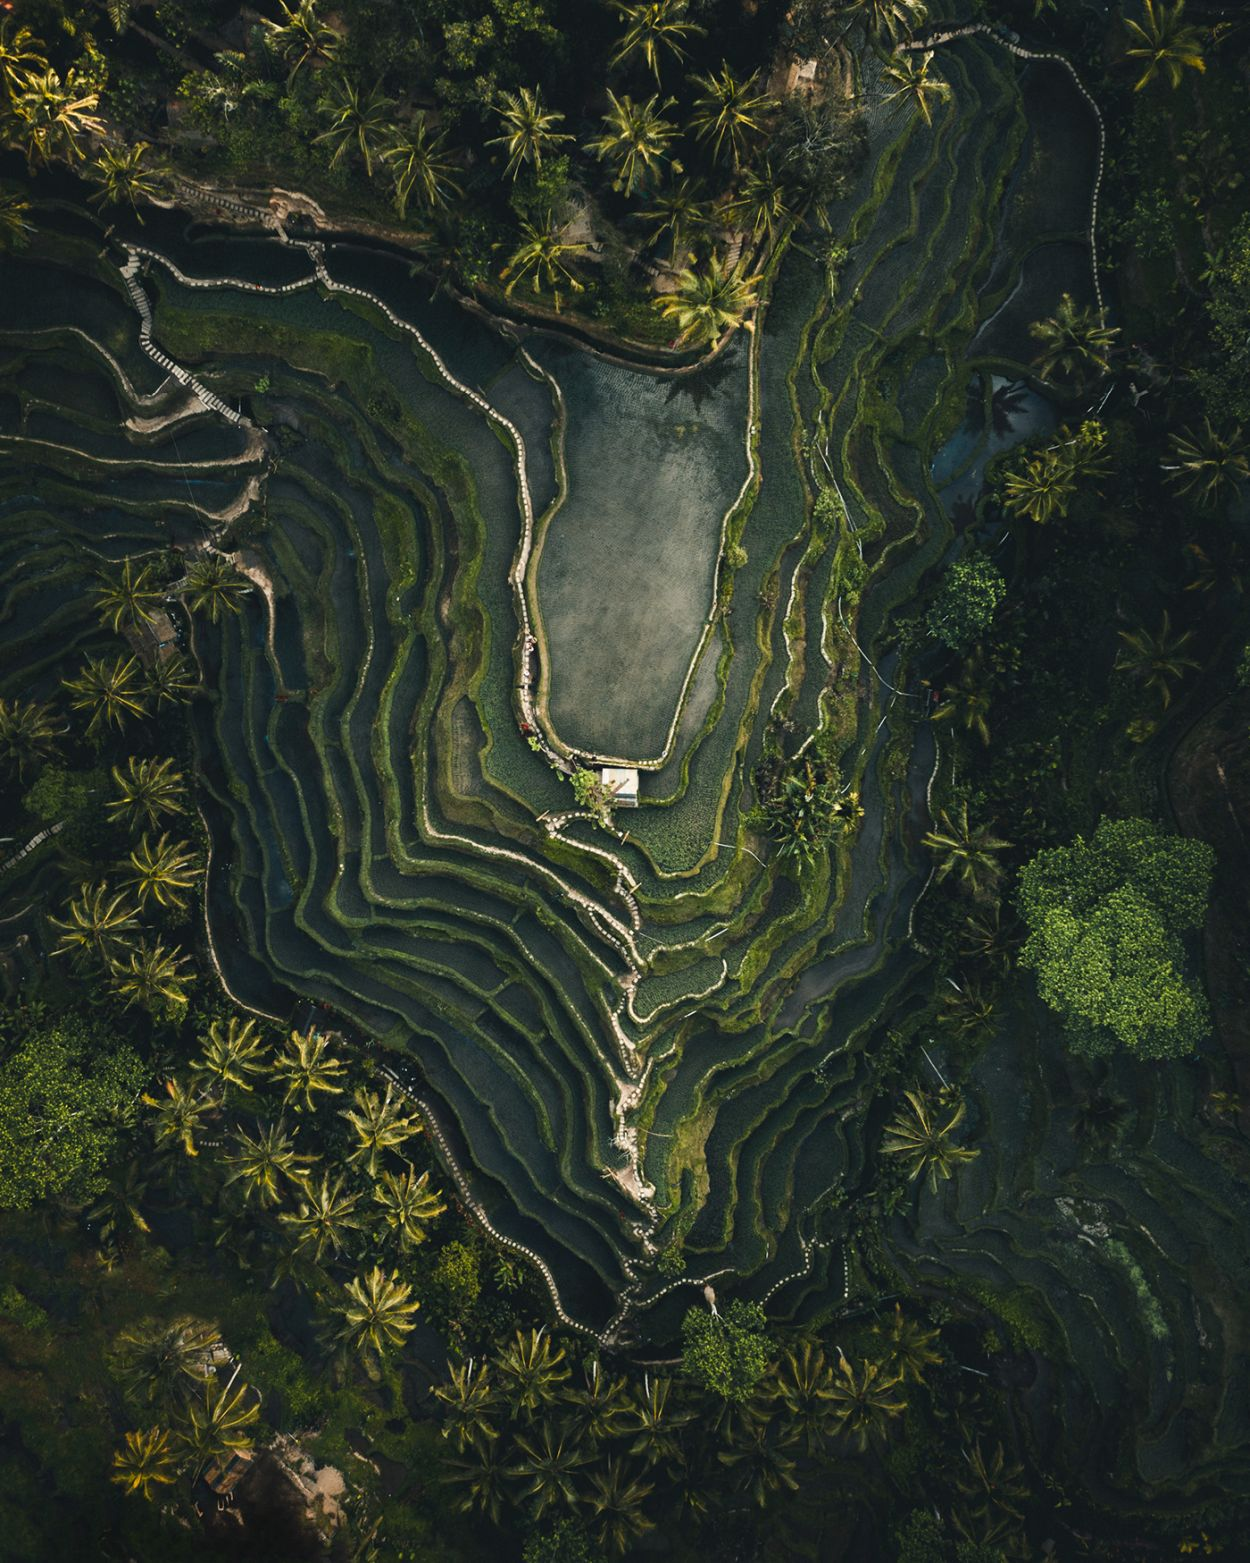 aerial photography tegallalang bali indonesia by witold ziomek